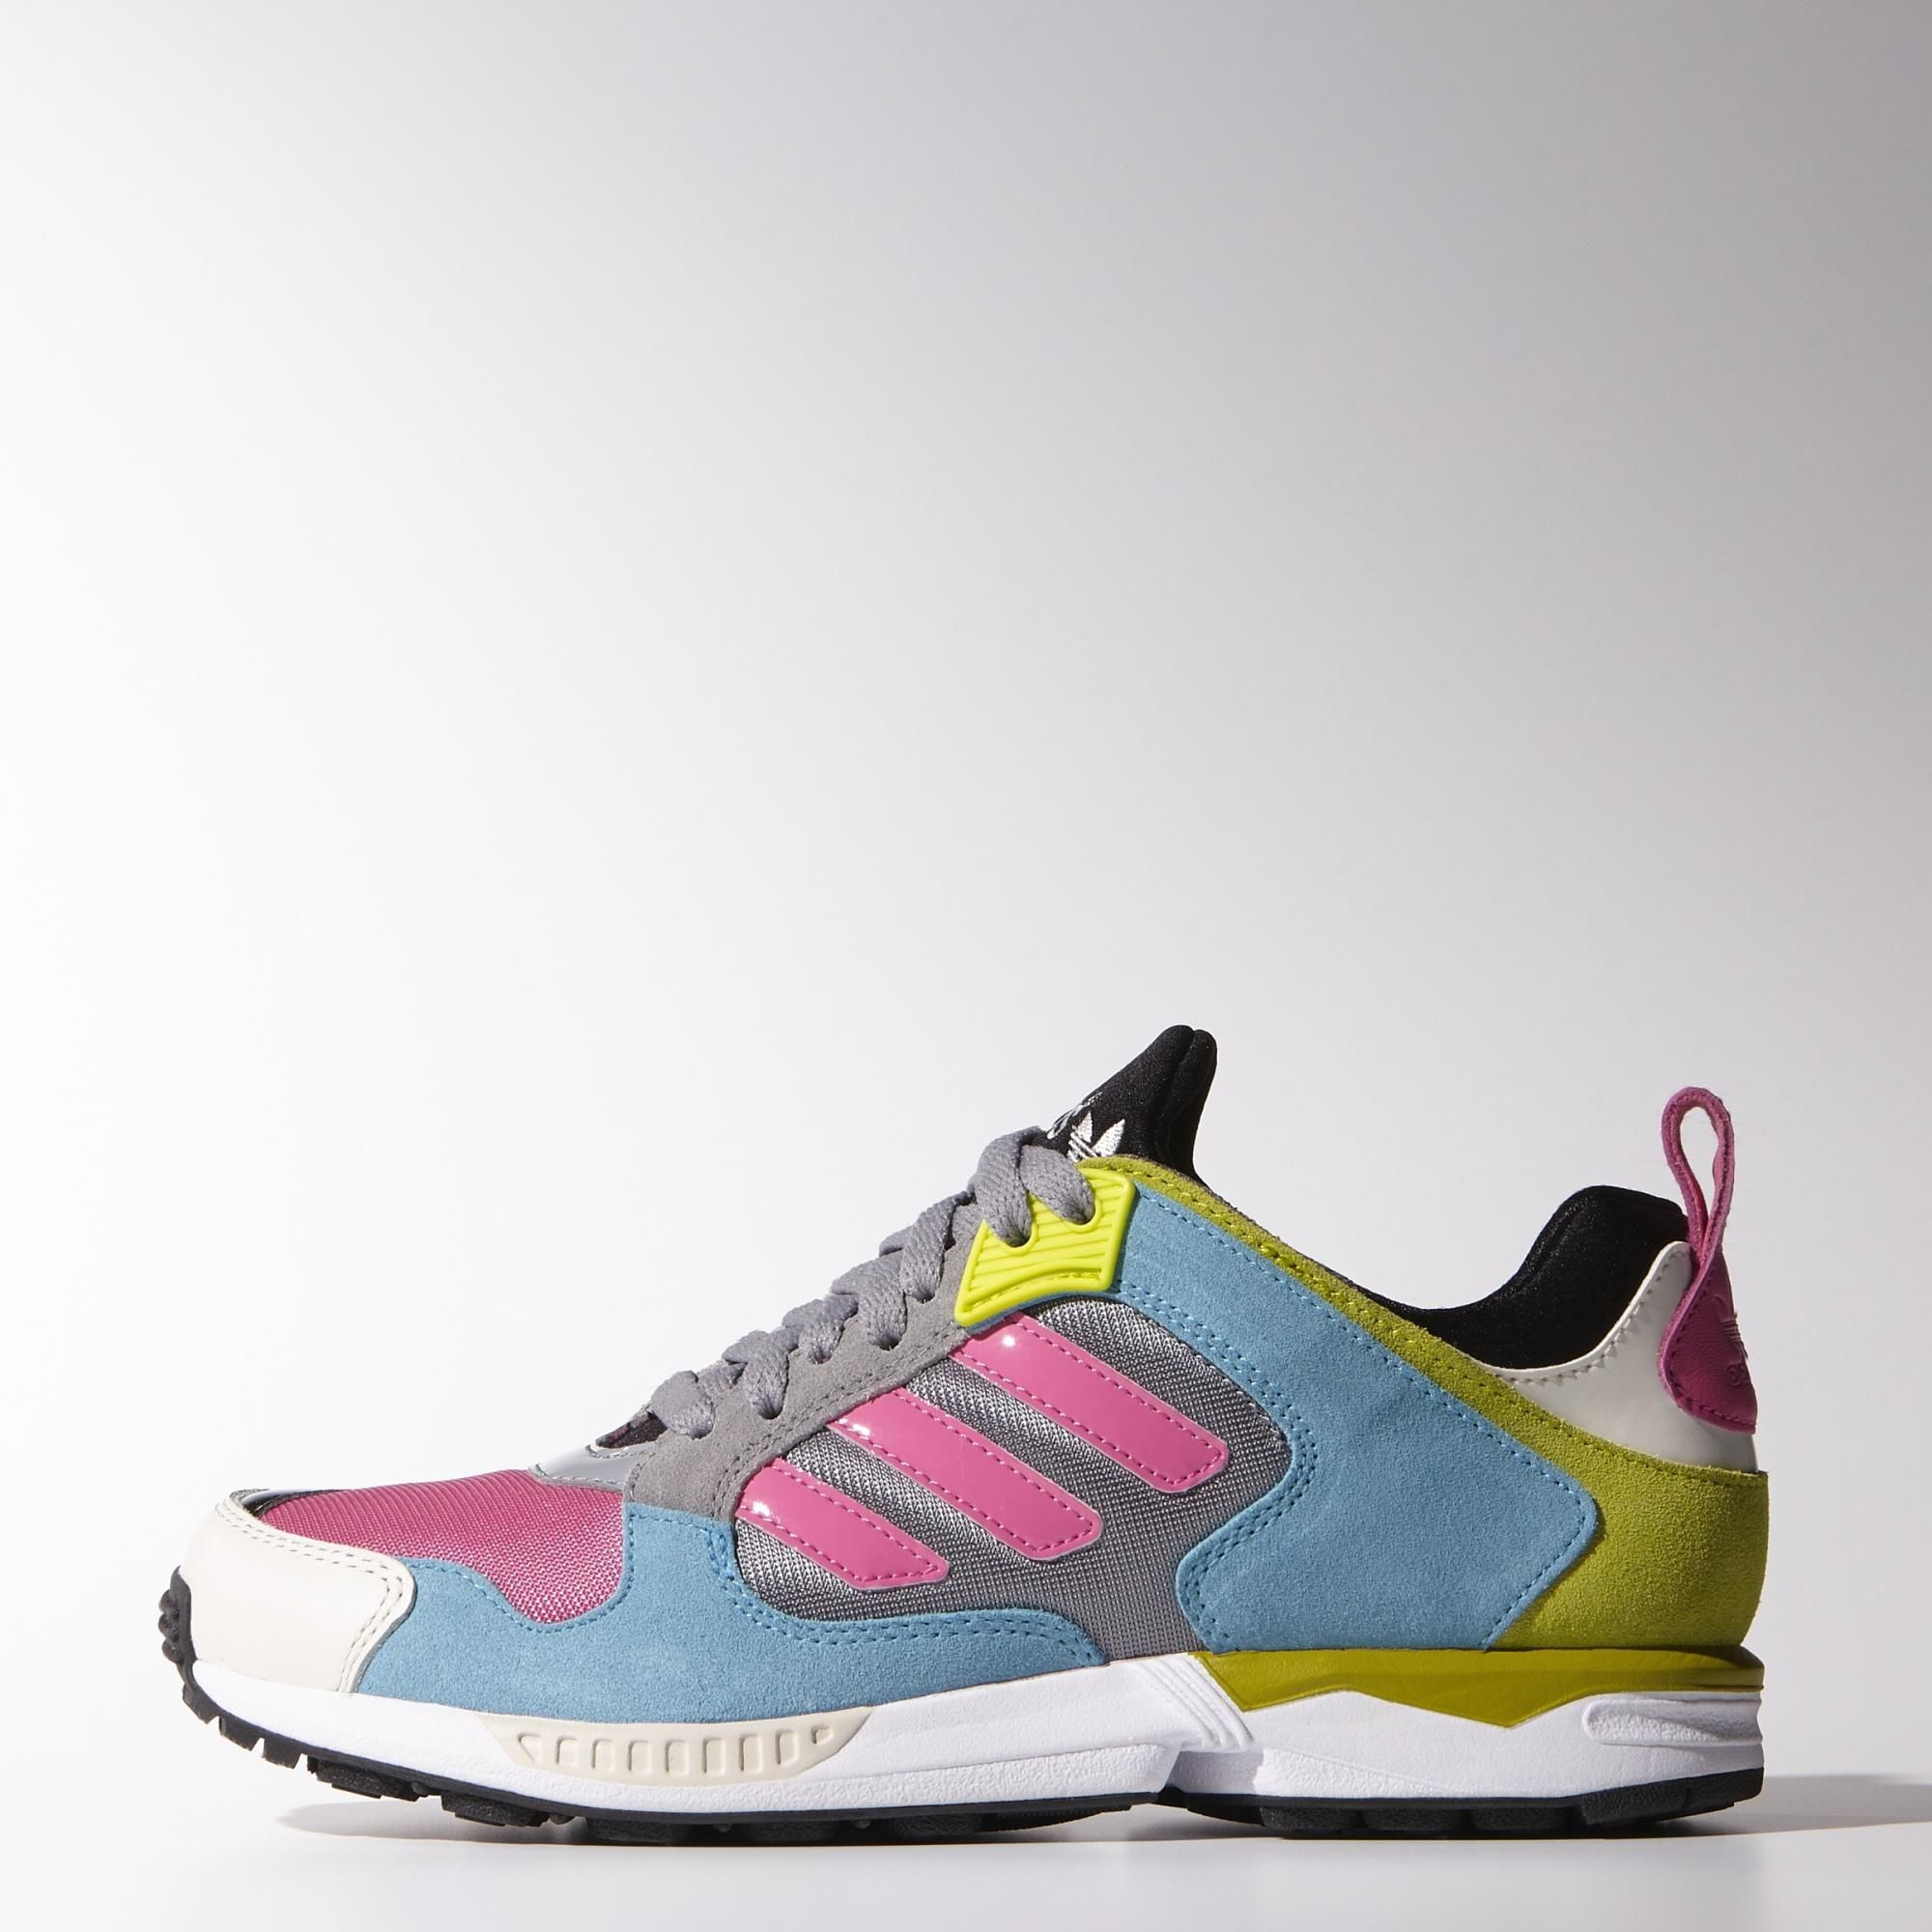 innovative design c0641 d3926 adidas ZX 5000 RSPN Shoes   adidas UK